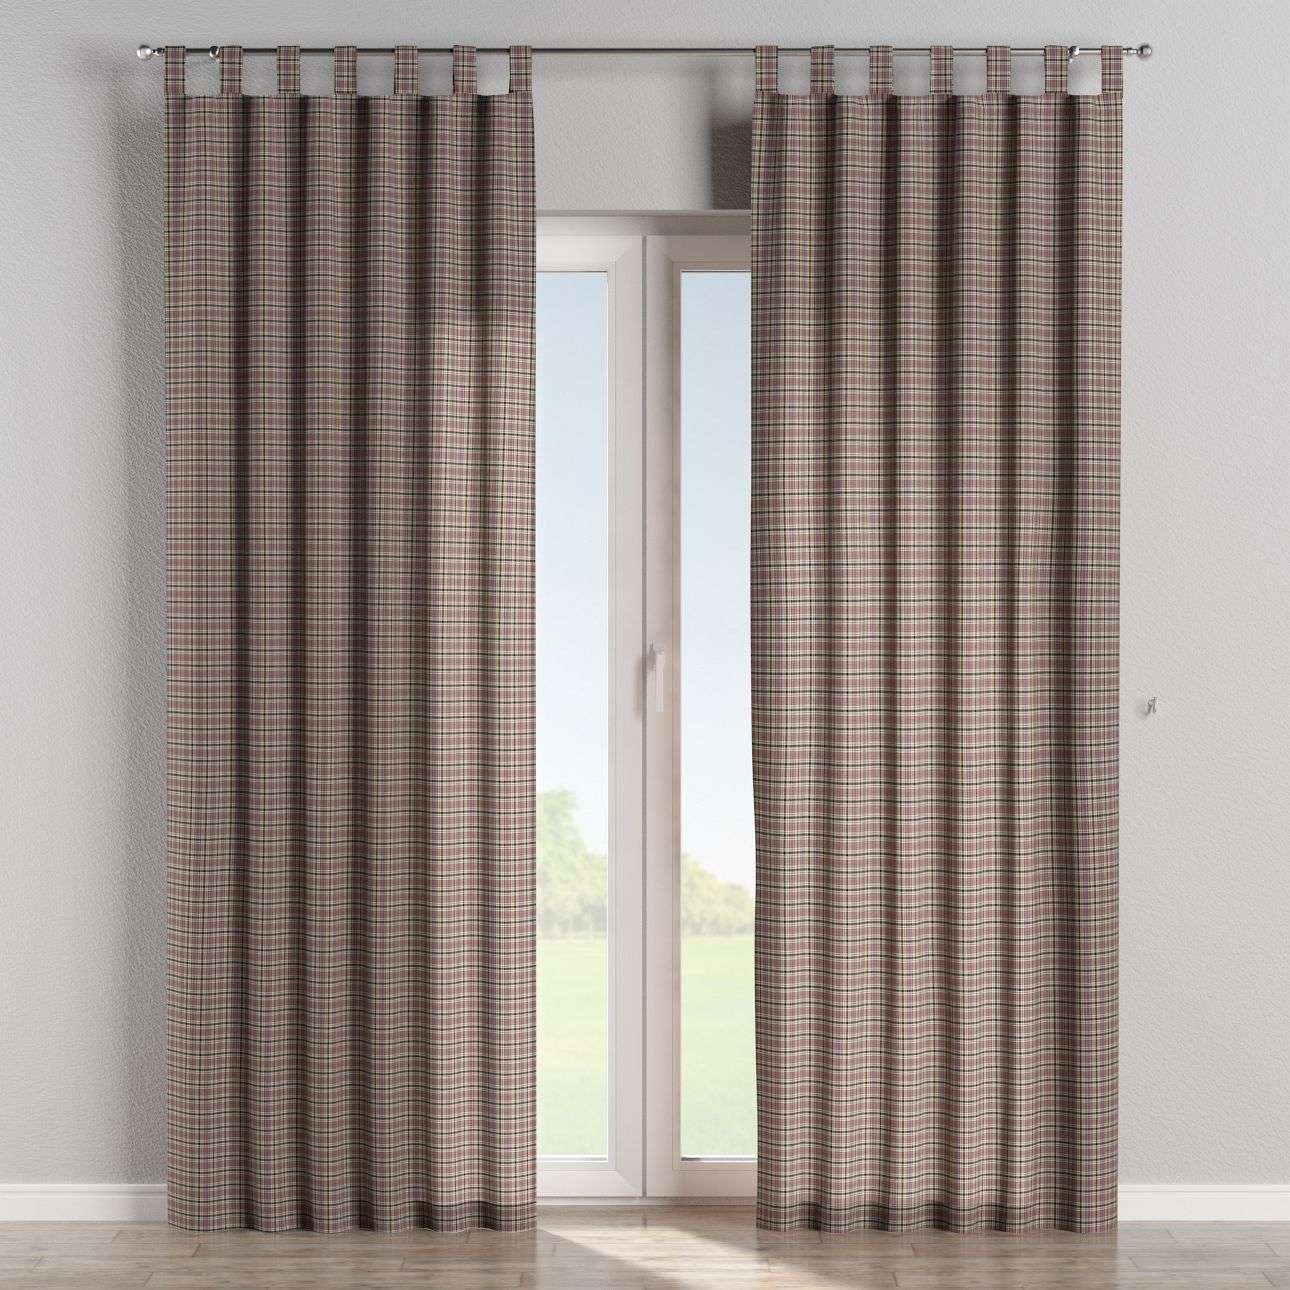 Tab top curtains 130 x 260 cm (51 x 102 inch) in collection Bristol, fabric: 126-32